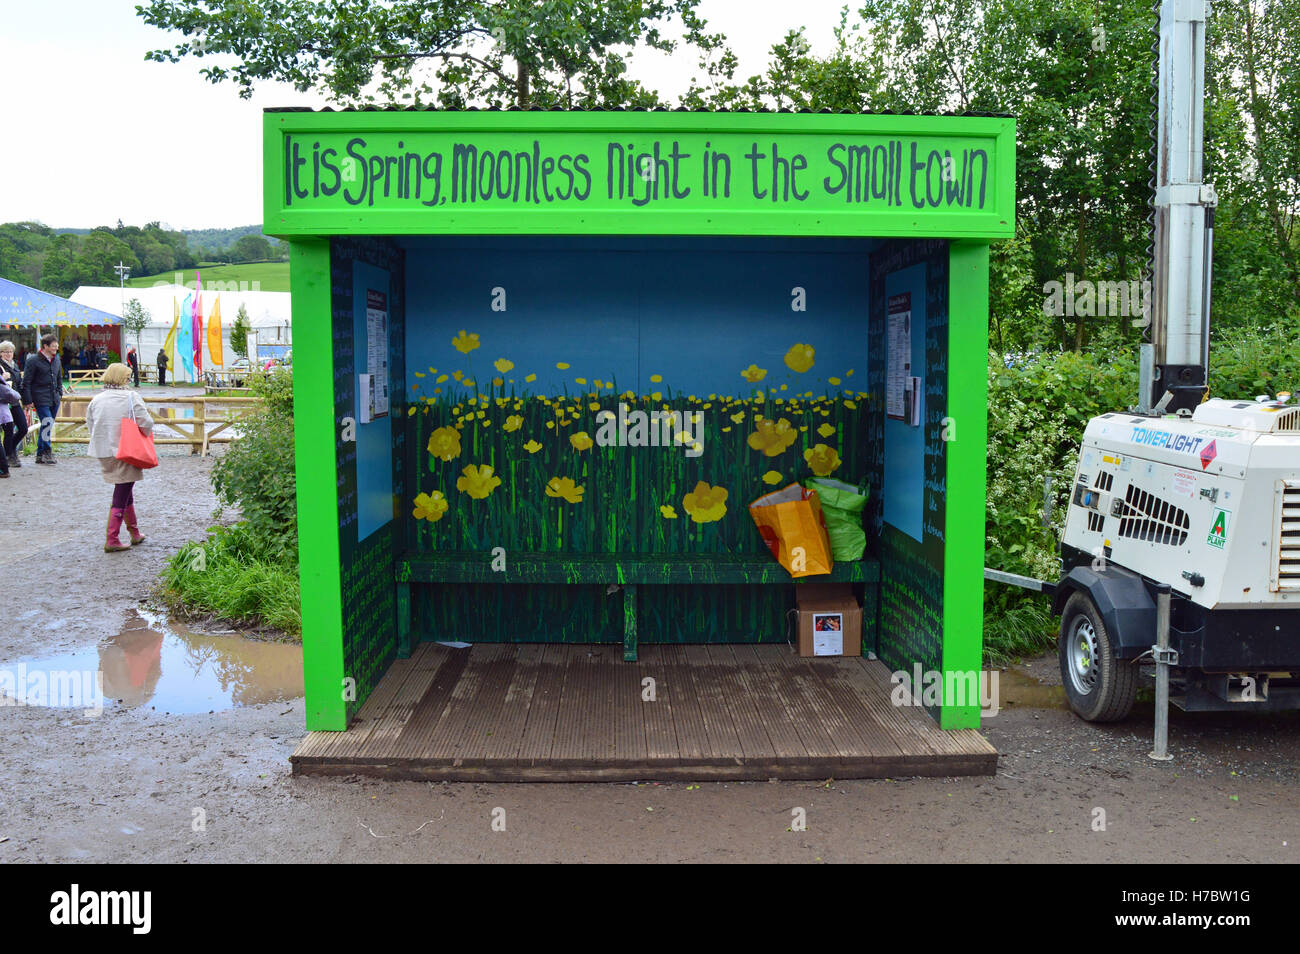 Bus shelter at the Hay Festival decorated with quote from Under Milk Wood by Dylan Thomas - Stock Image